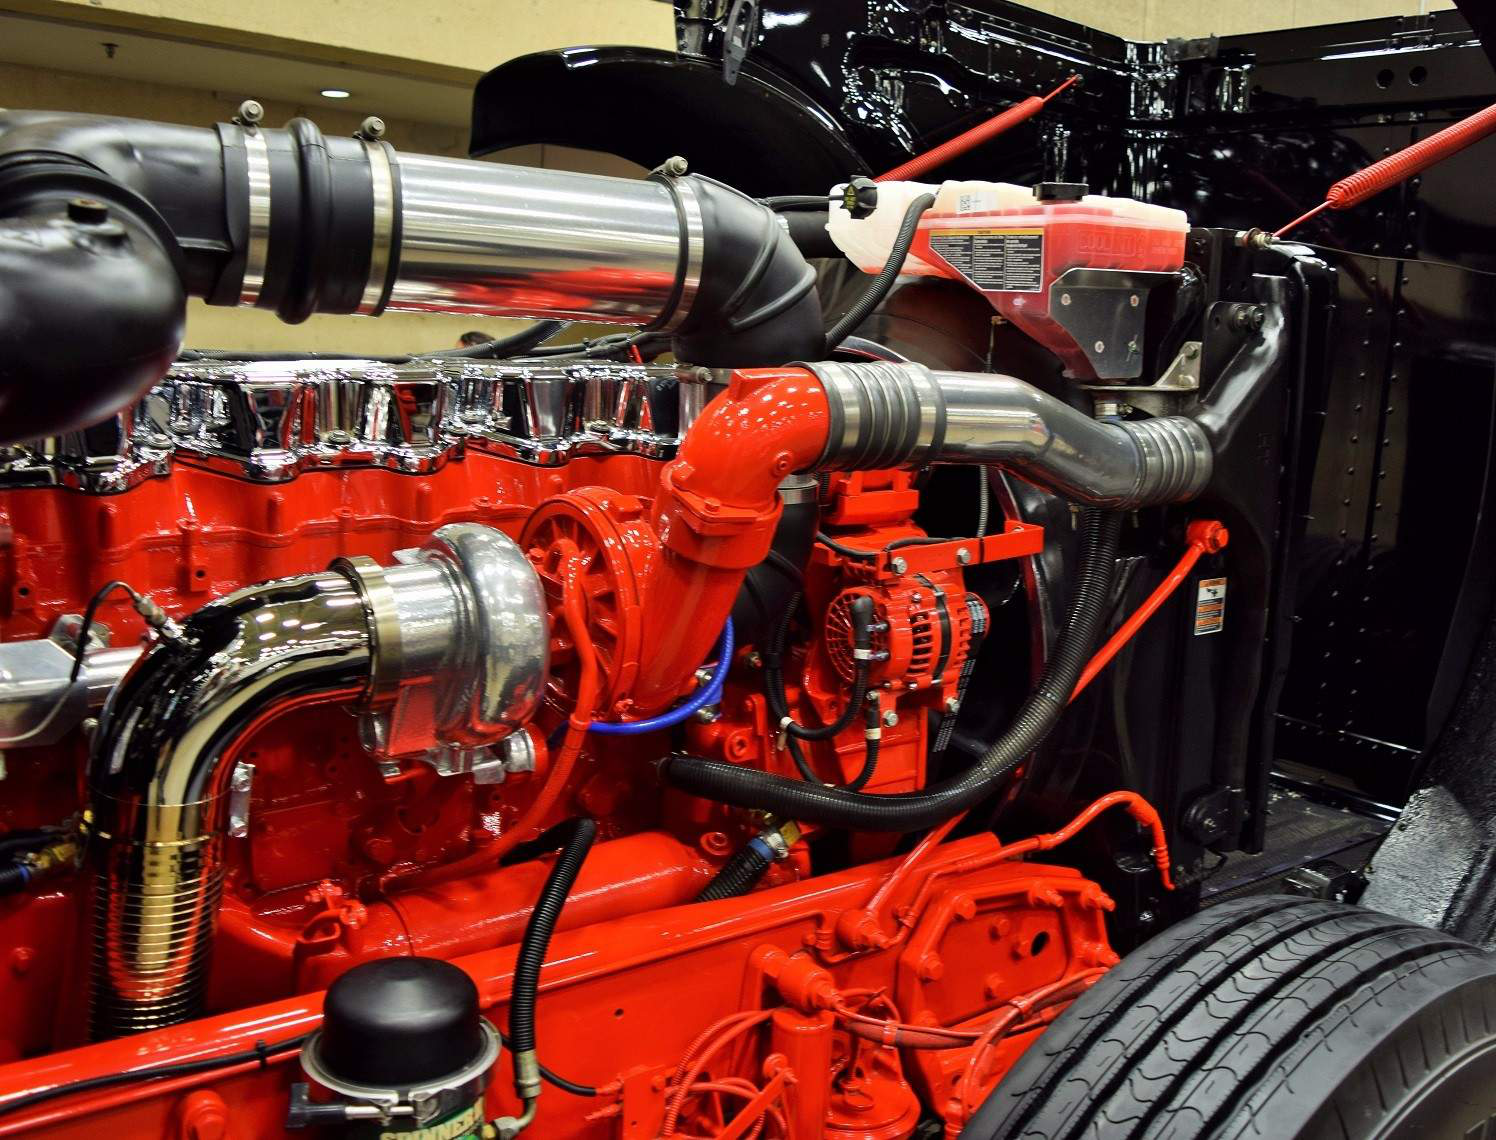 Alt fuel engines expected to gain market share over next 5 years